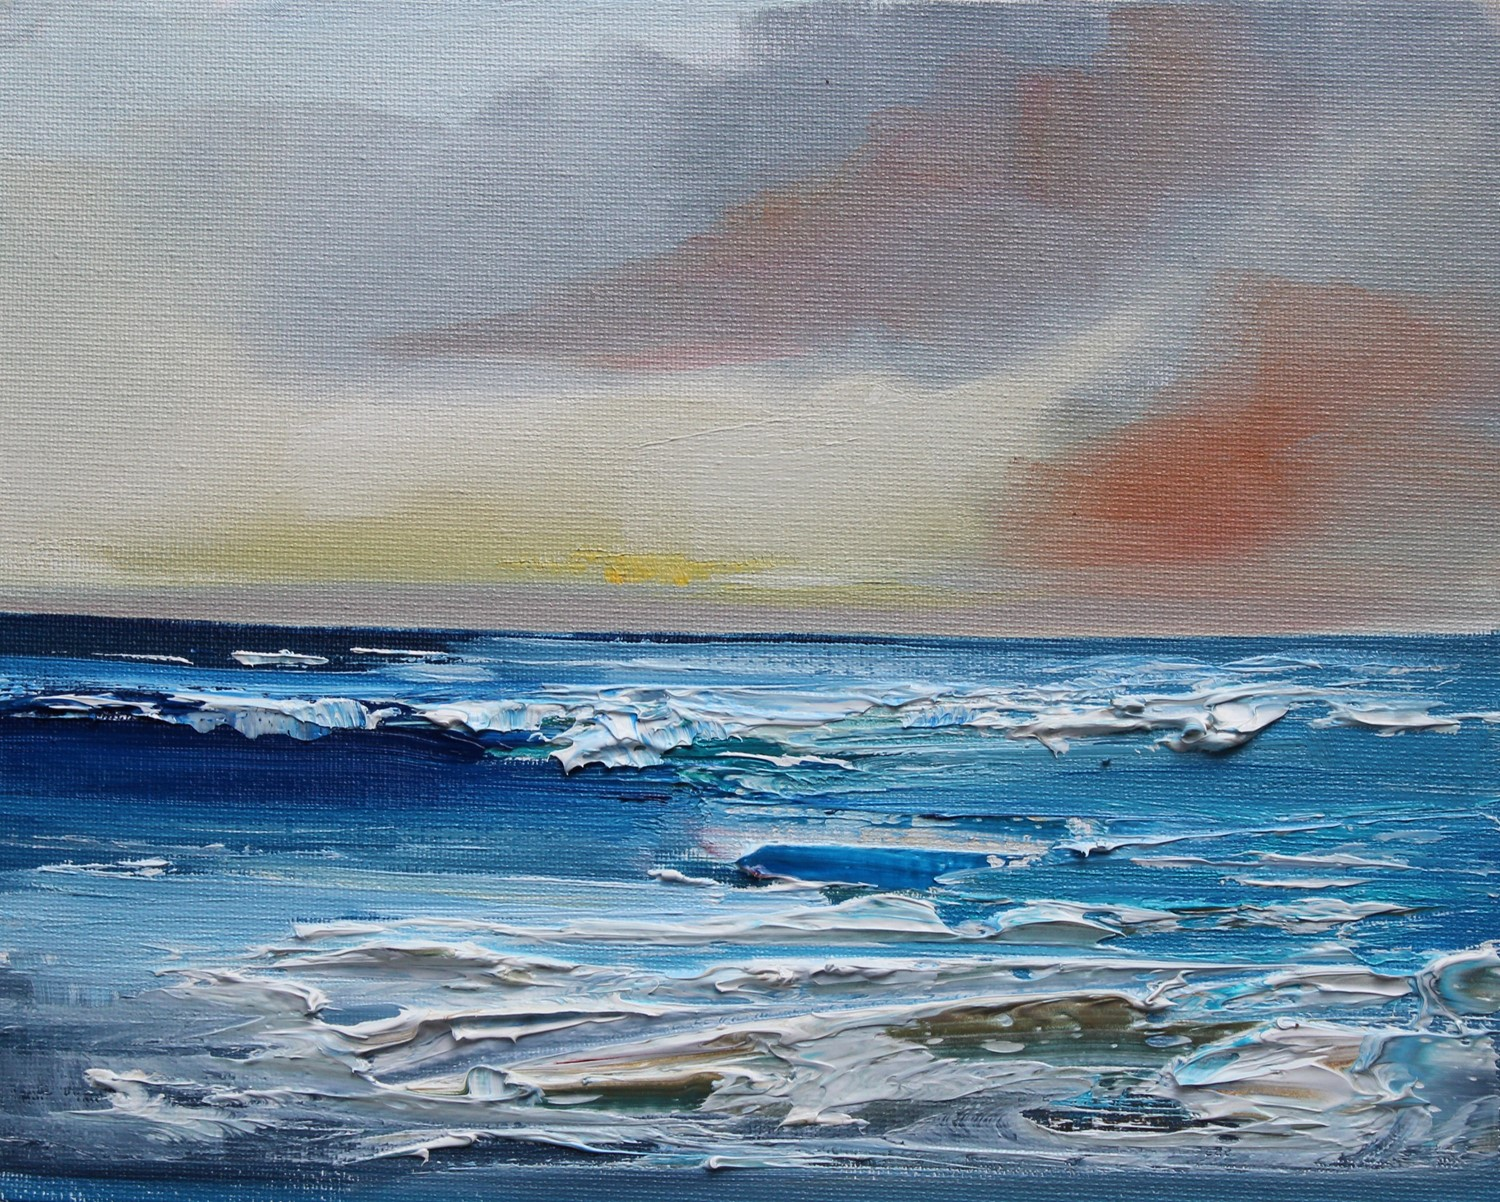 'Evening Sea Surf' by artist Rosanne Barr